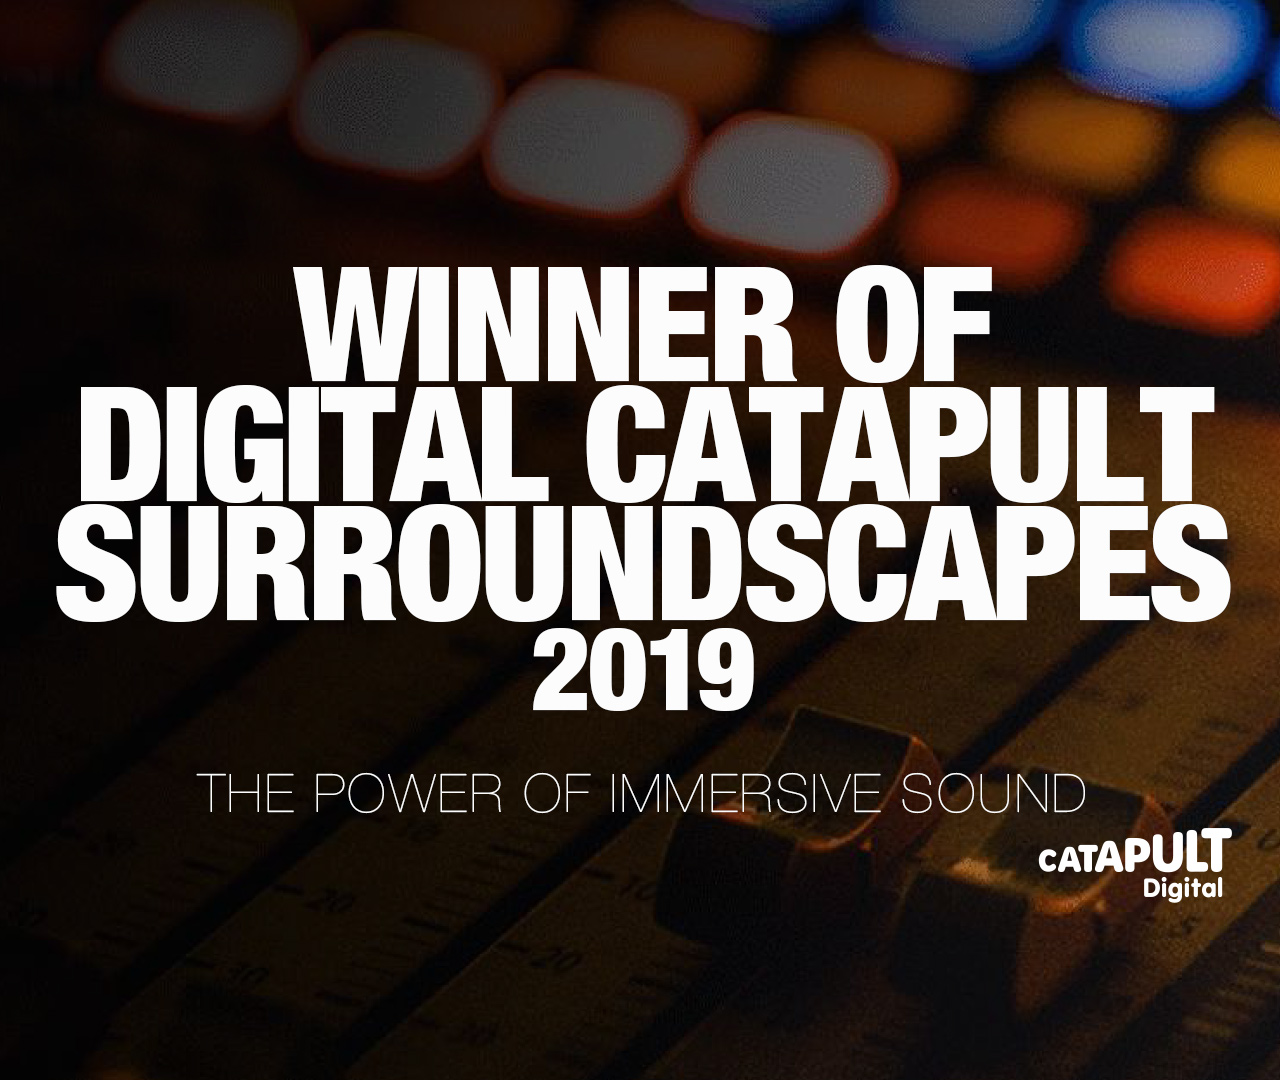 WINNER OF DIGITAL CATAPULT SURROUNDSCAPES 2019